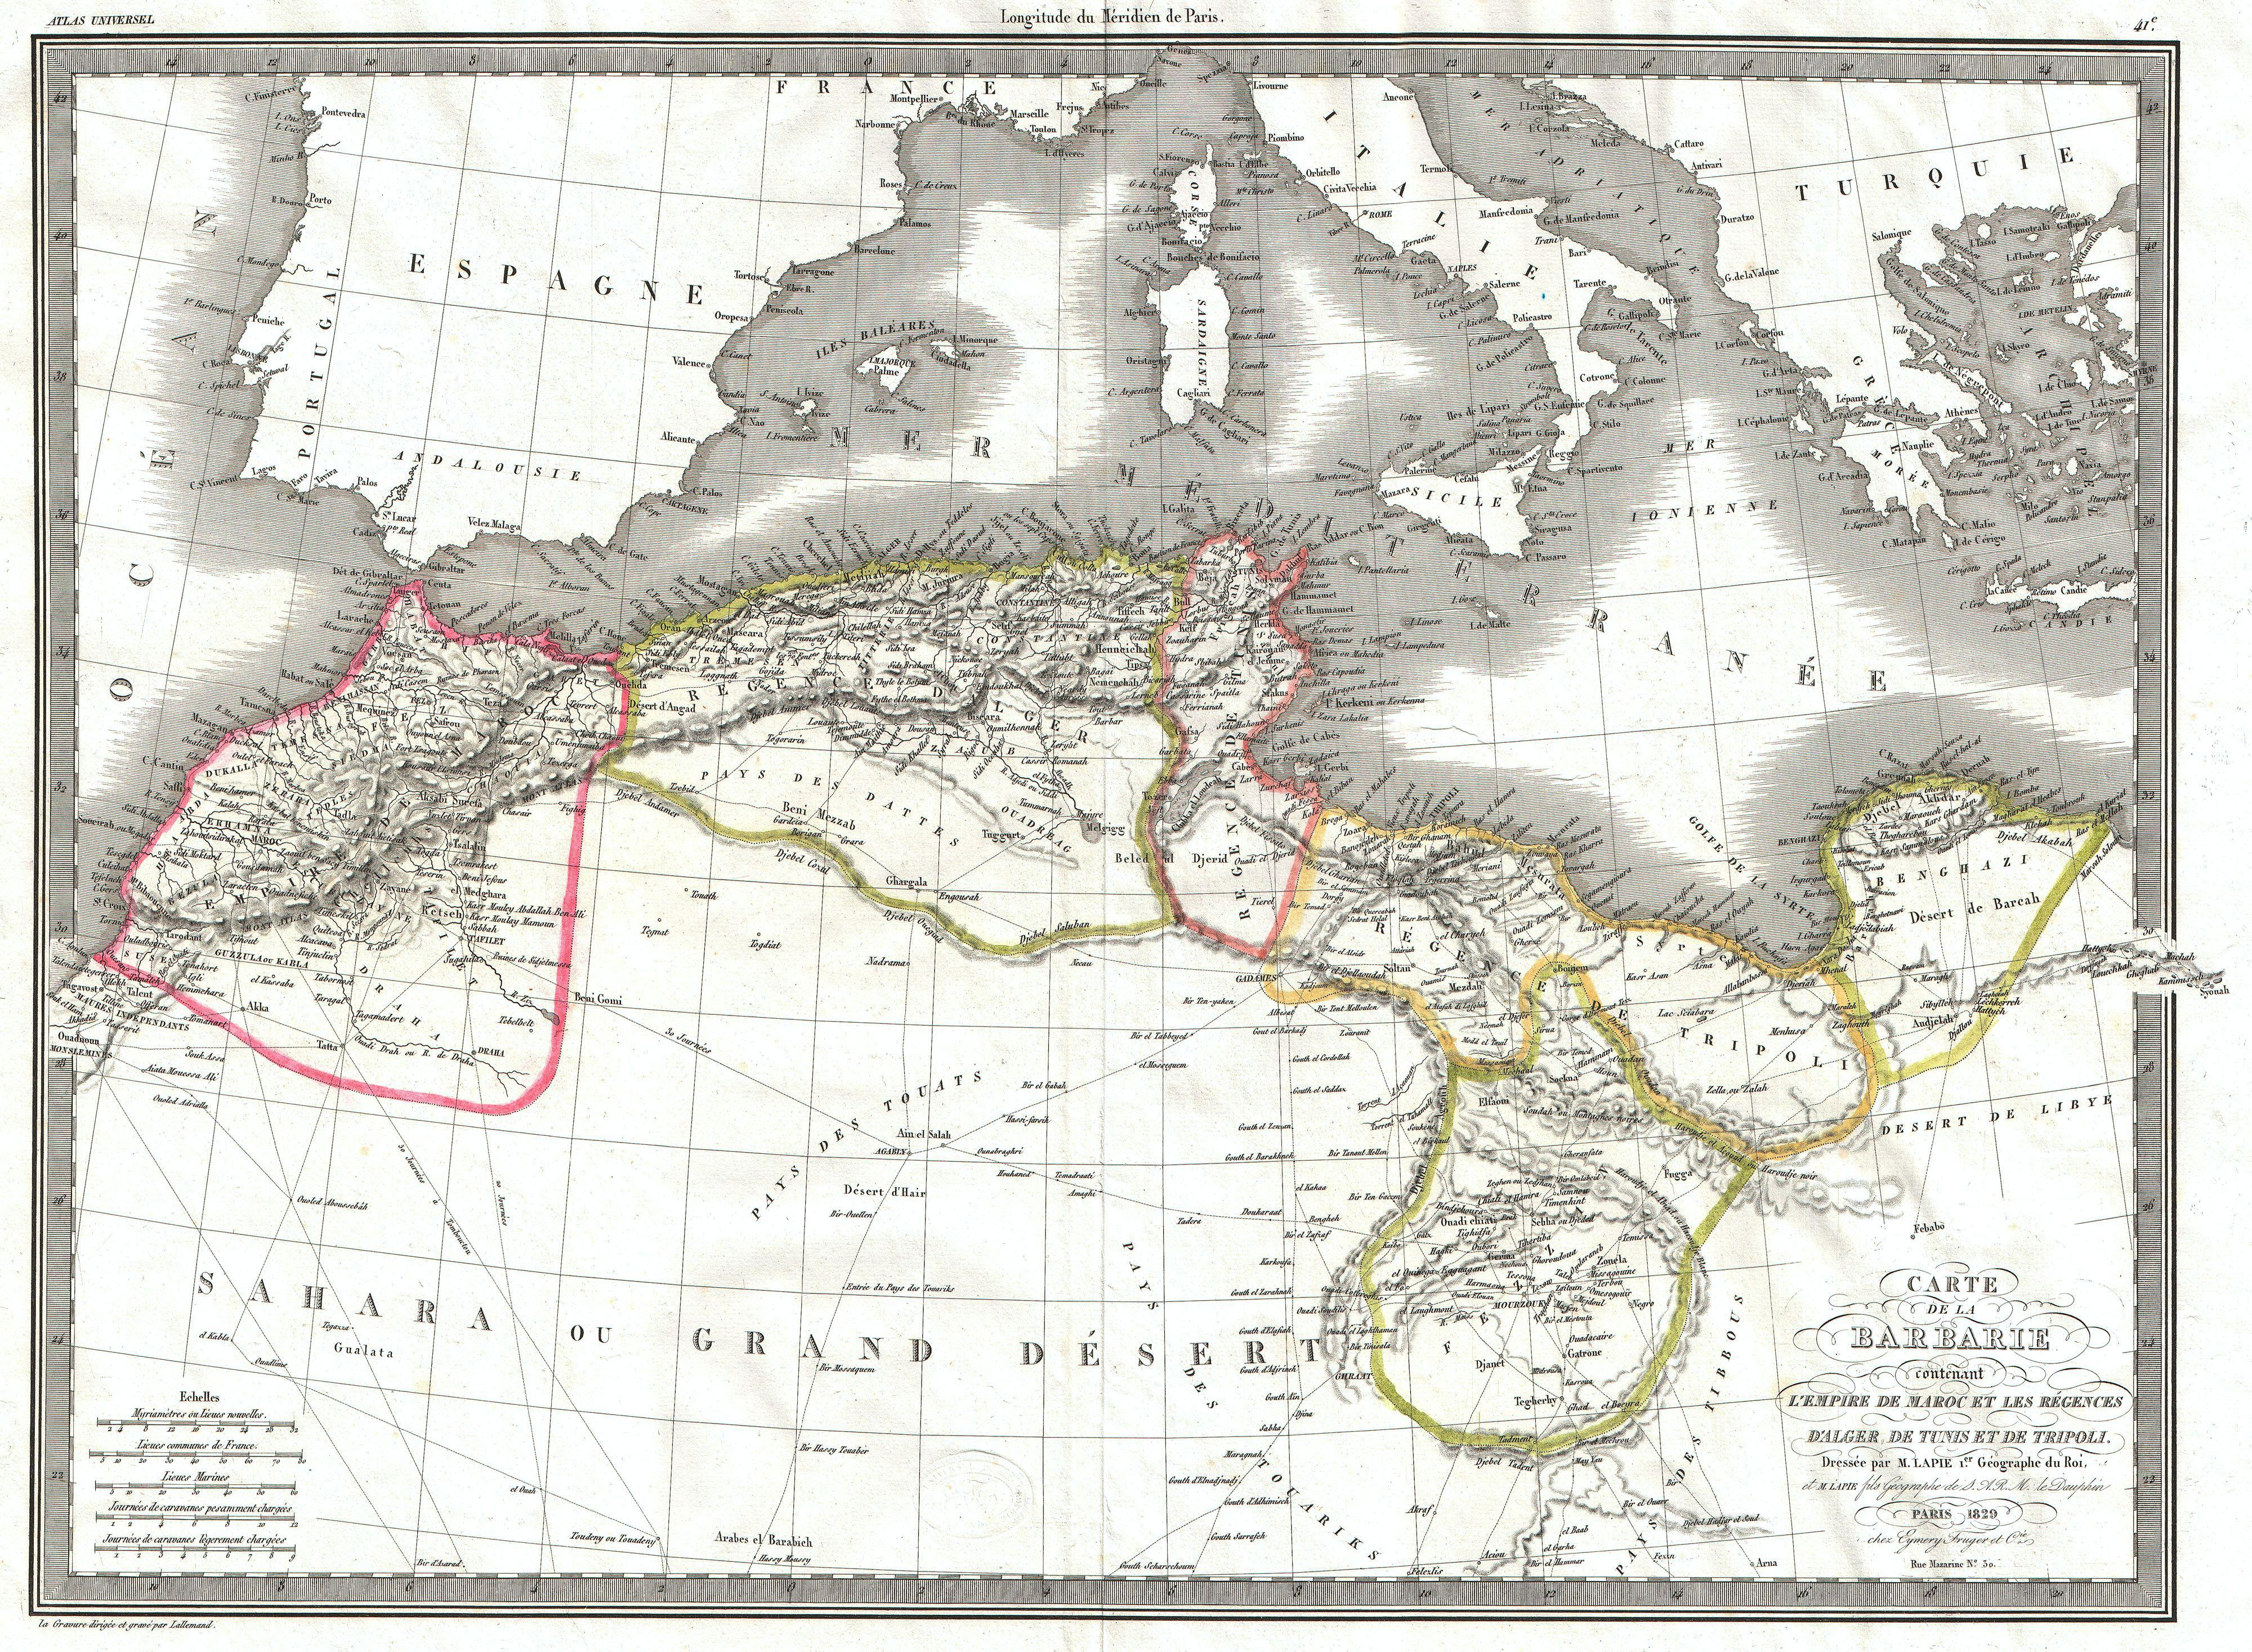 northwestern map with File 1829 Lapie Map Of The Eastern Mediterranean  Morocco  And The Barbary Coast   Geographicus   Barbarie Lapie 1829 on 3 Pagosa Pk Dacite furthermore Indian wells map besides Kyuquot 20Sound furthermore Many Guam Beaches likewise 4029.